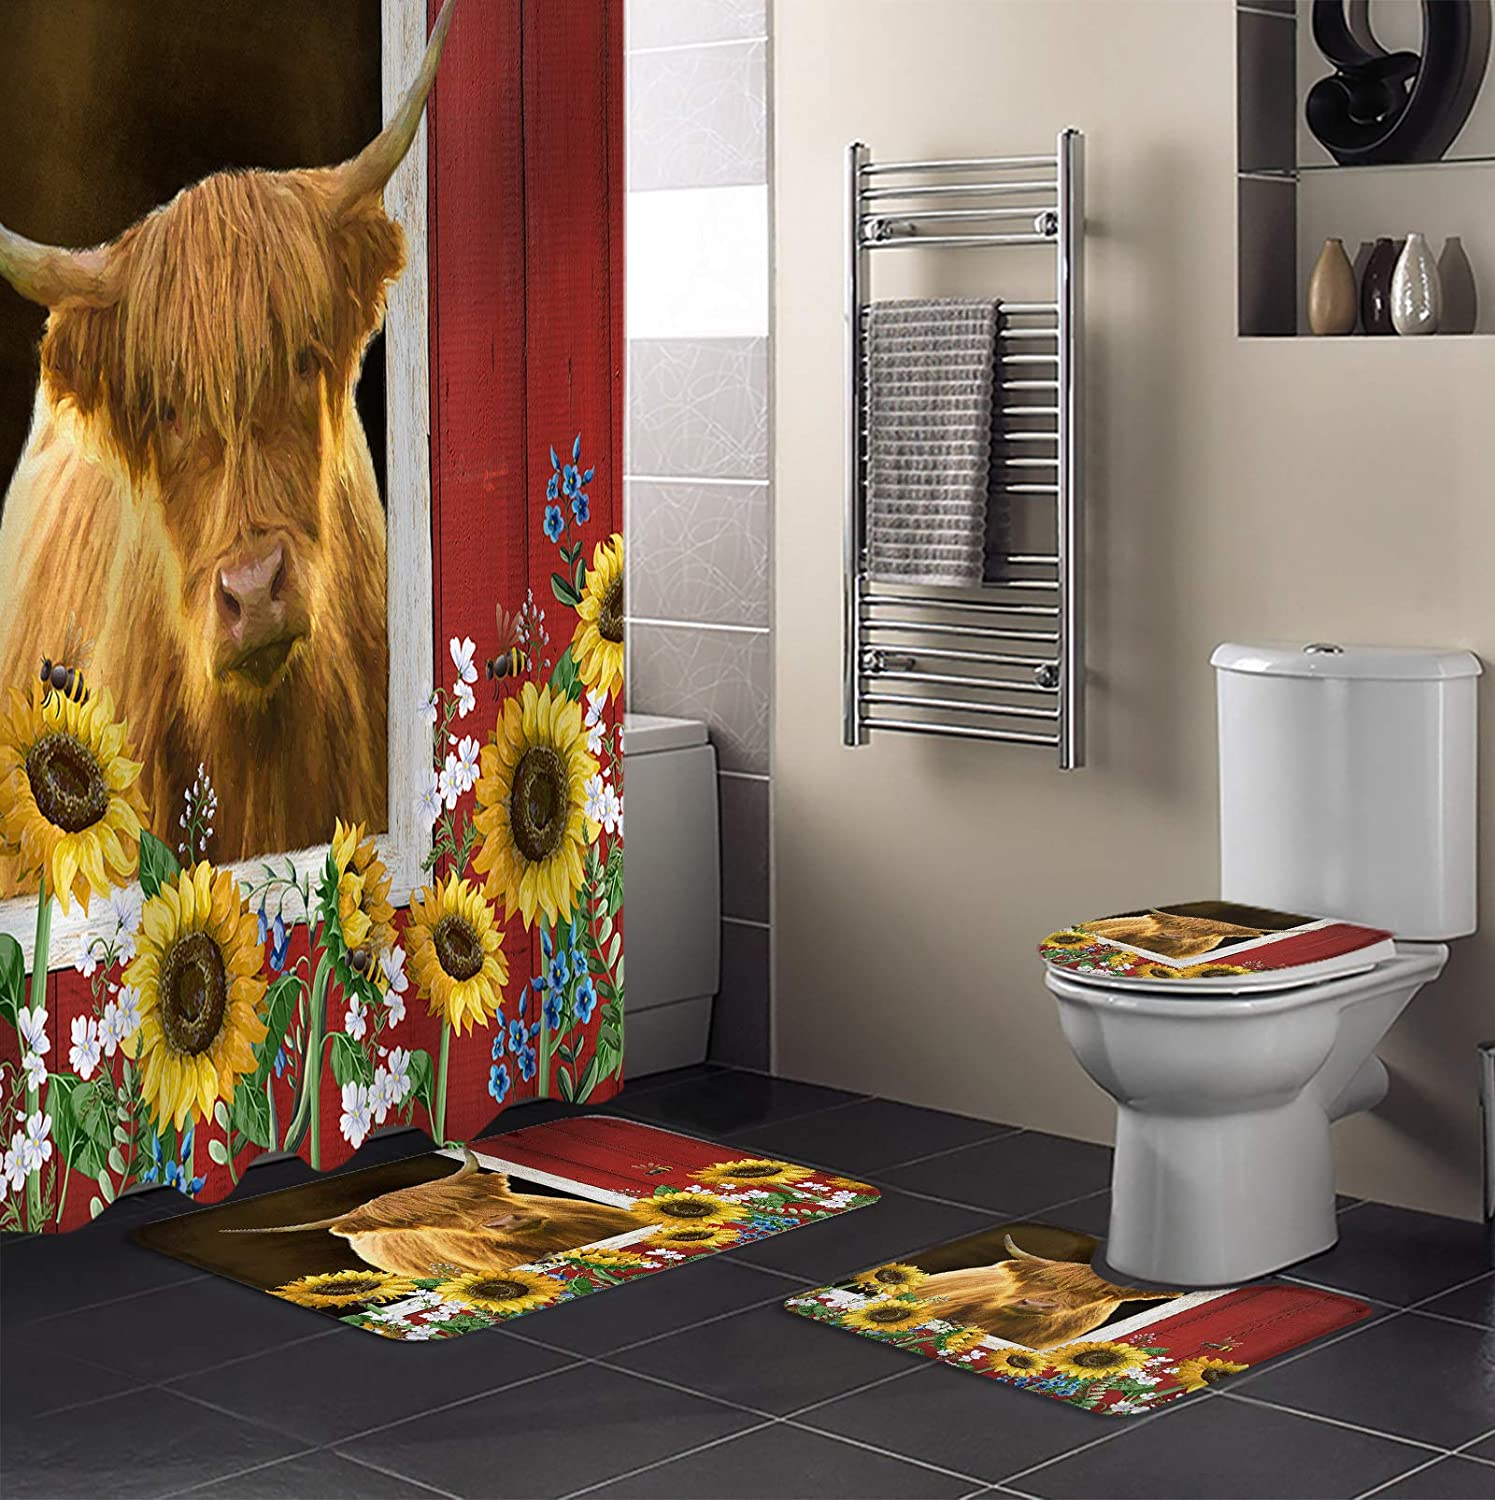 4 Piece Shower Curtain Sets Sunflower Highland Bees Fa Cattle in Max Same day shipping 42% OFF